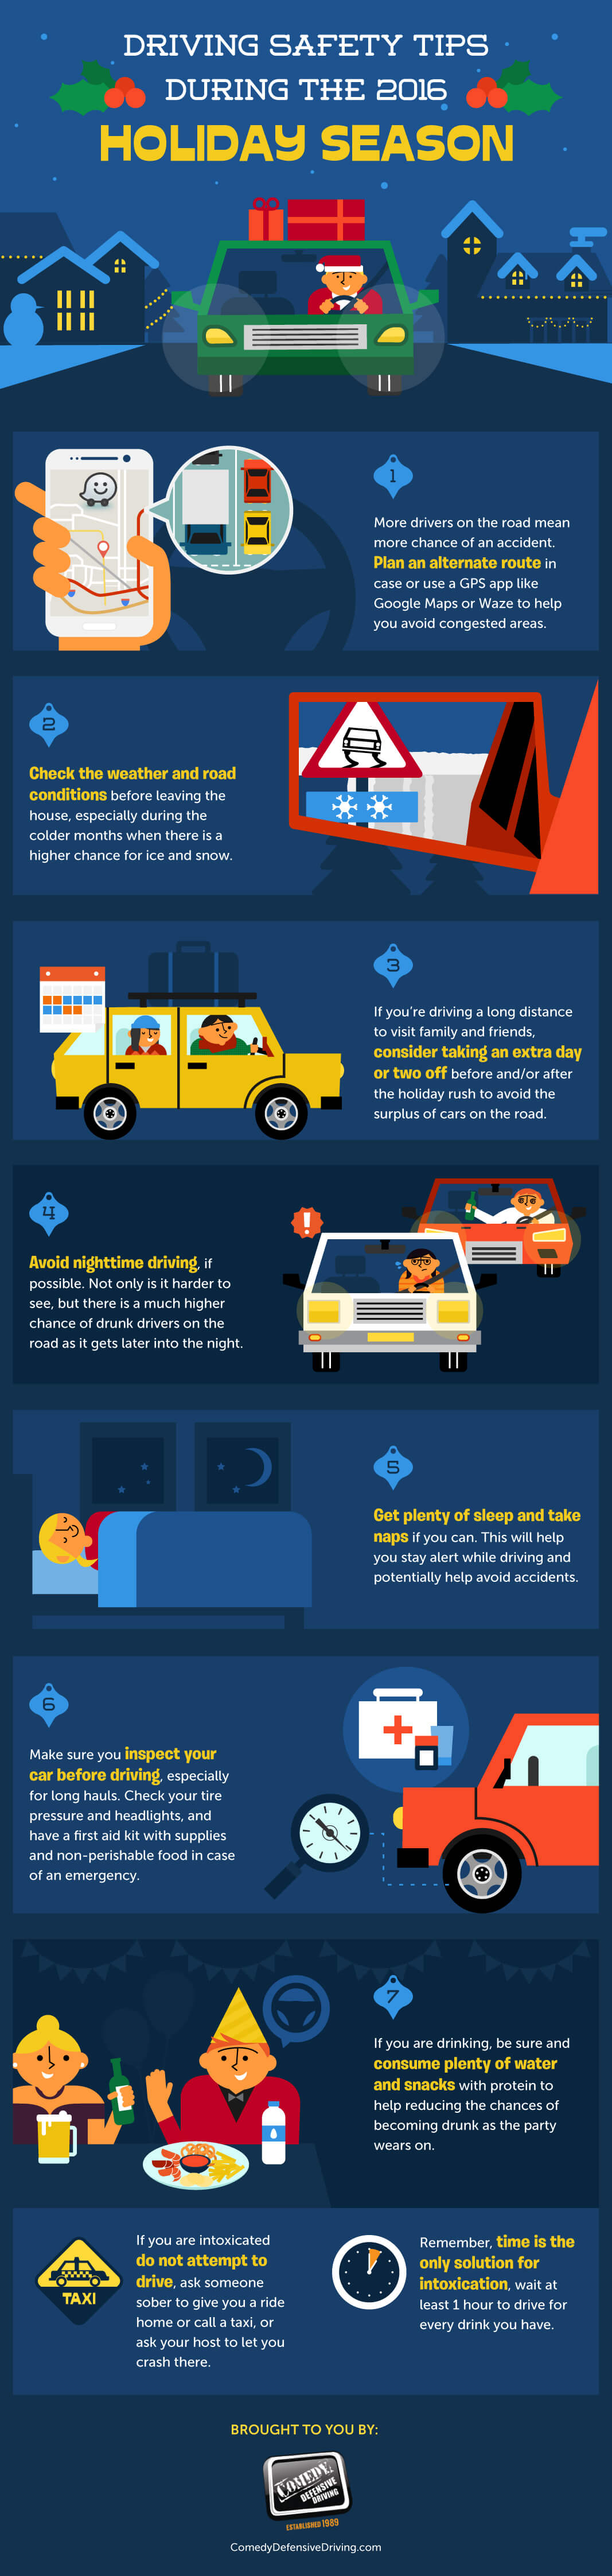 Driving-Safety Tips-During-2016-Holiday-Season-infographic-plaza